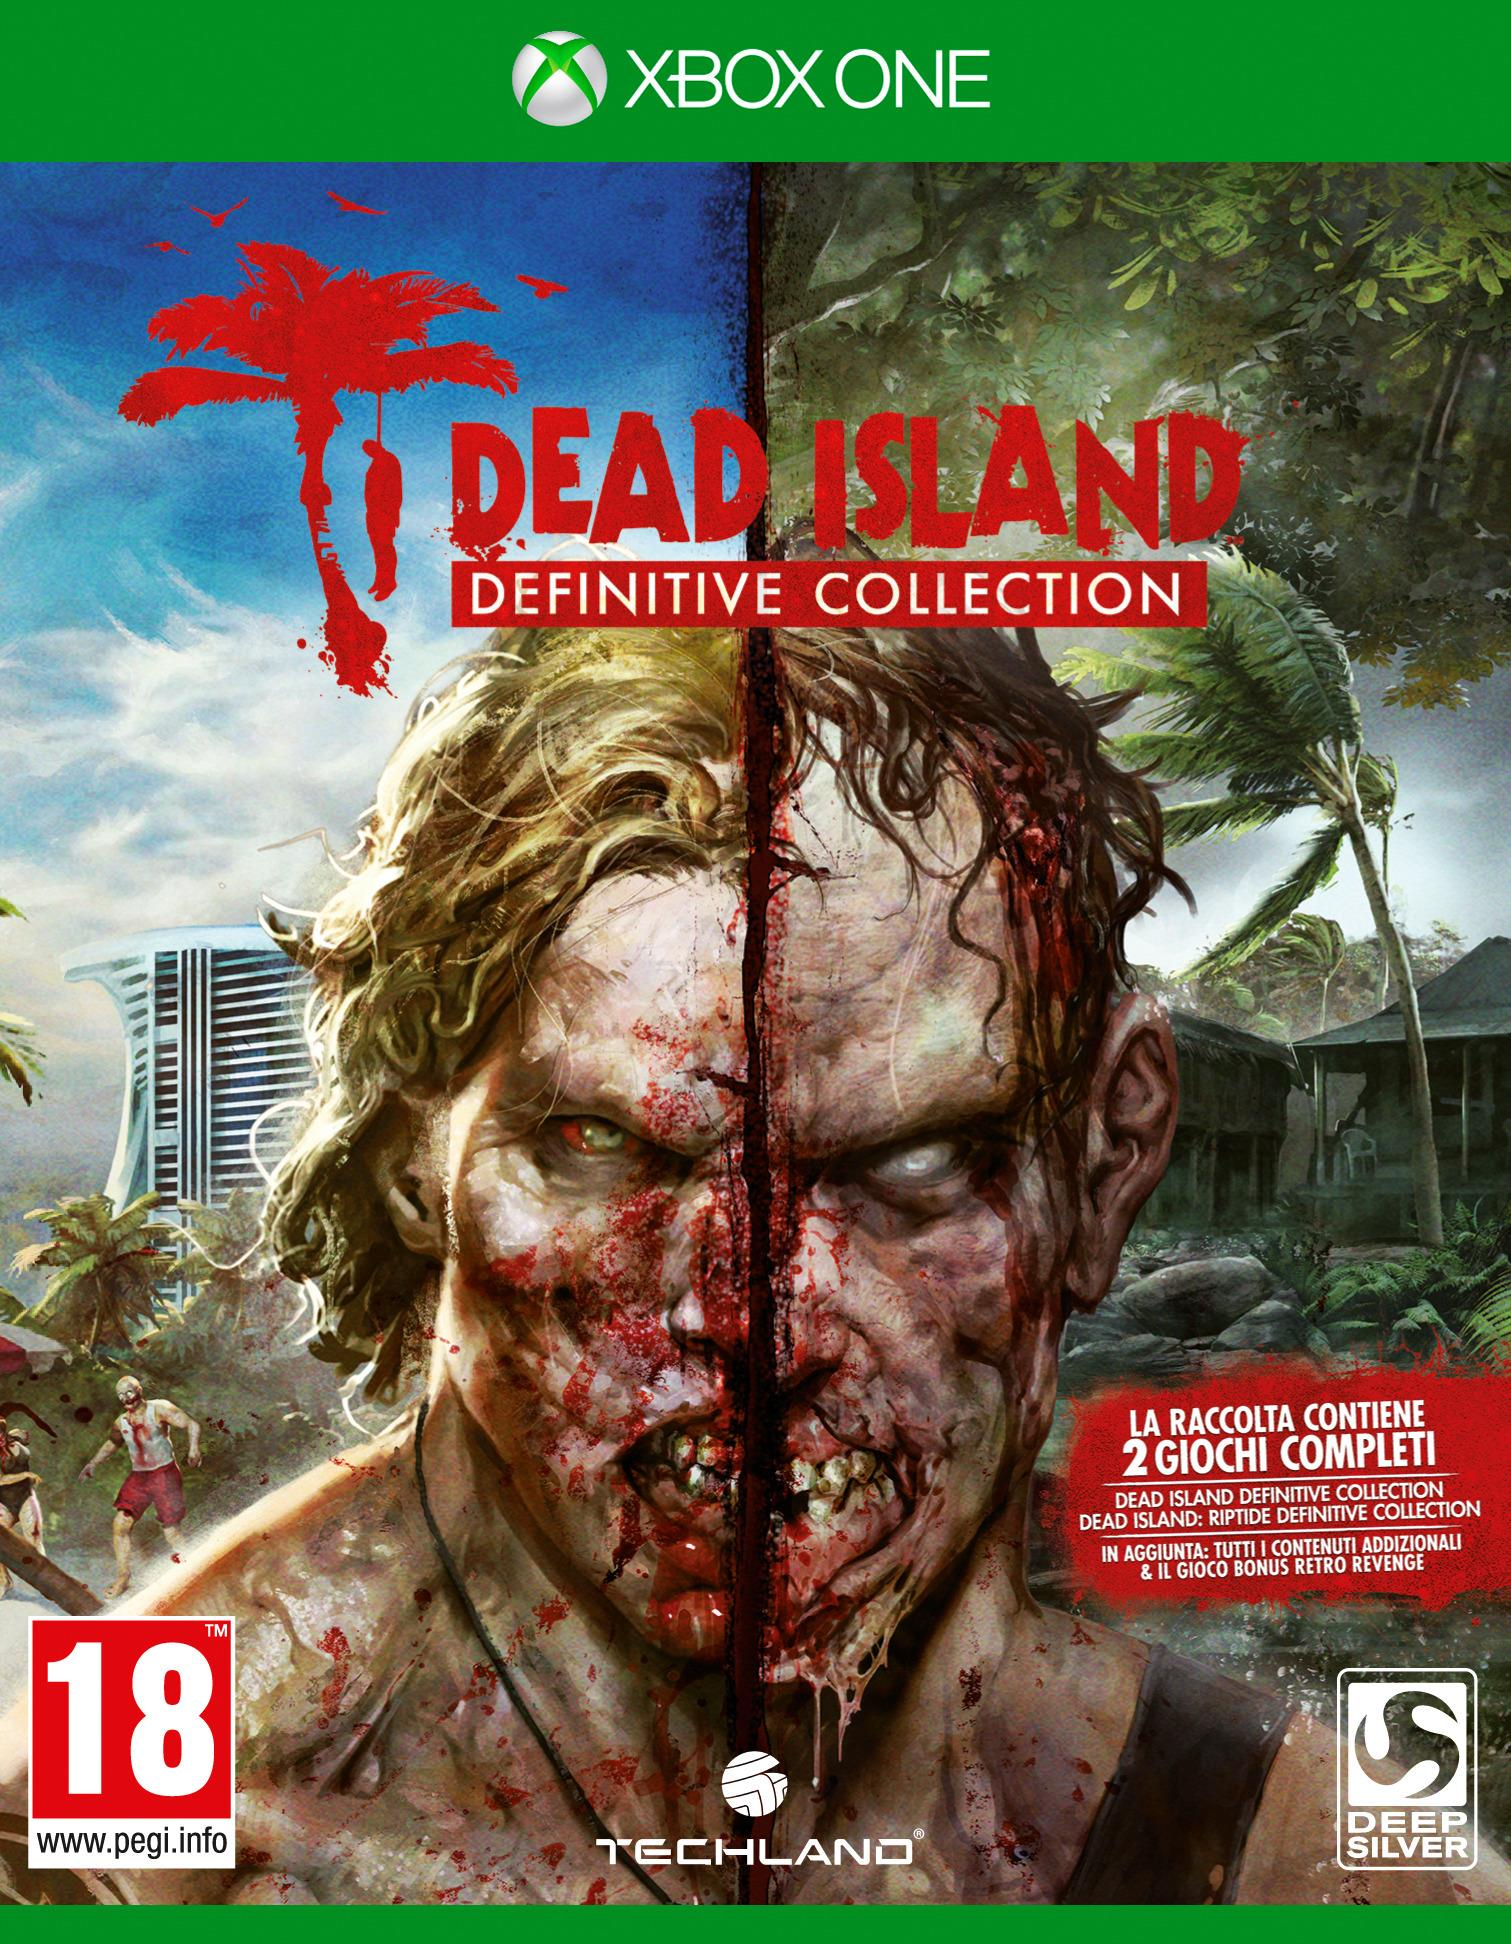 MICROSOFT GAME DEAD ISLAND DEFINITIVE EDITION COLLECTION PER XBOXONE